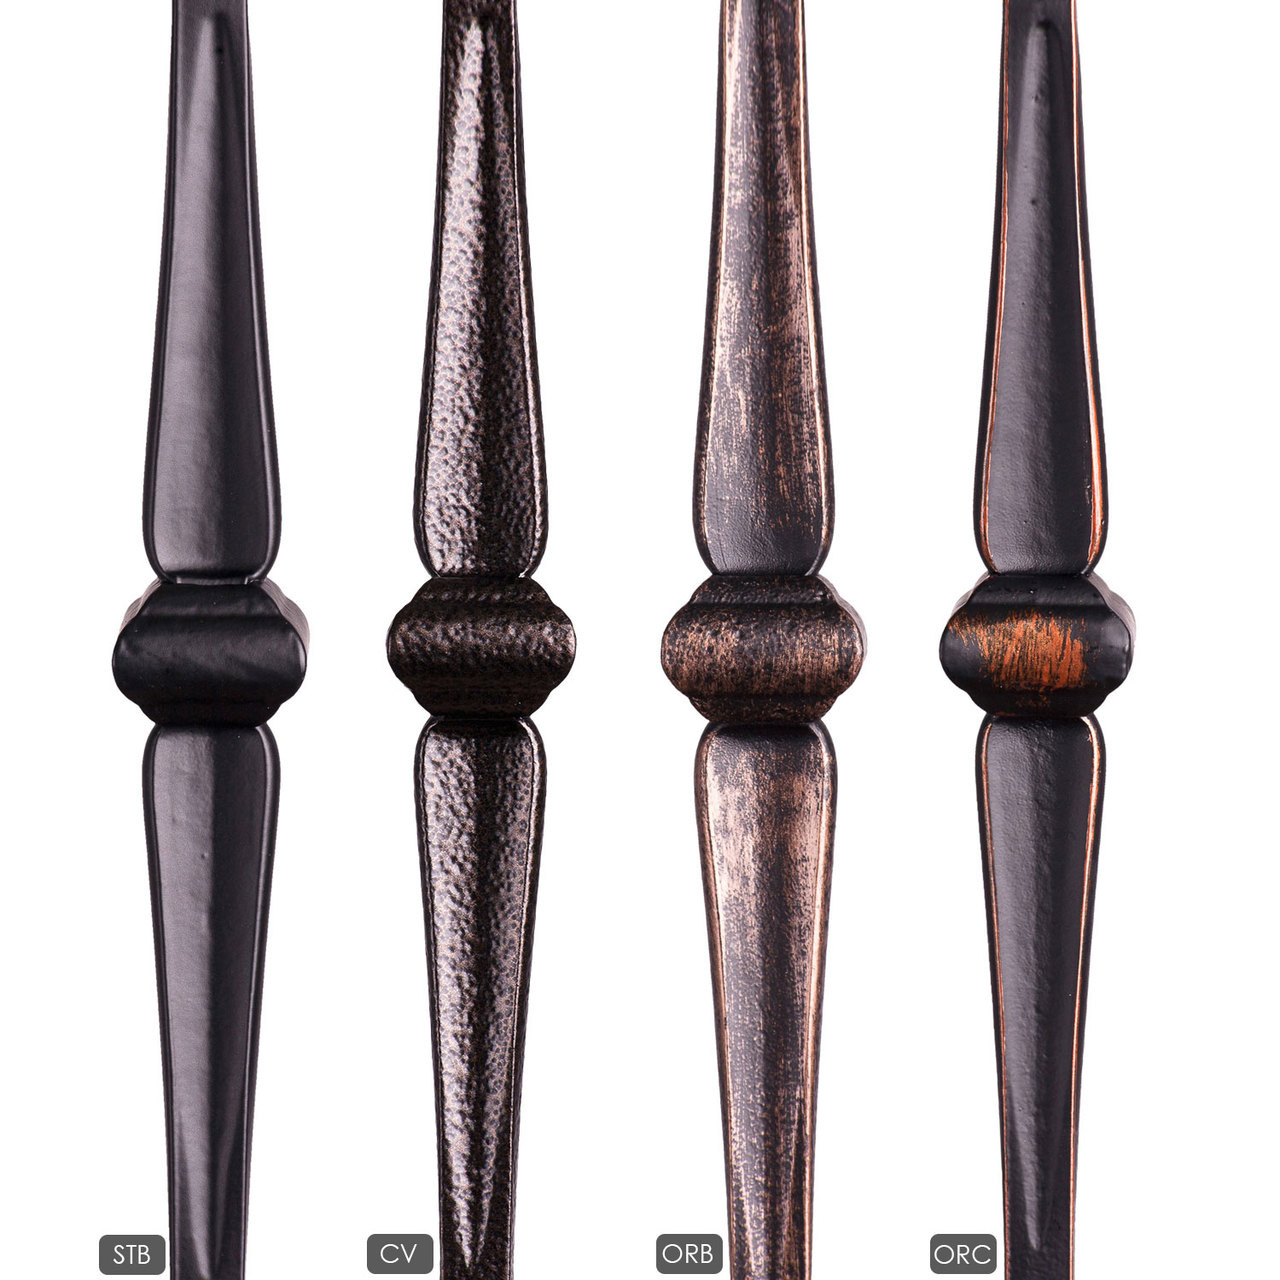 HF16.5.2 Single Knuckle Gothic Hammered Baluster Available Powder Coatings